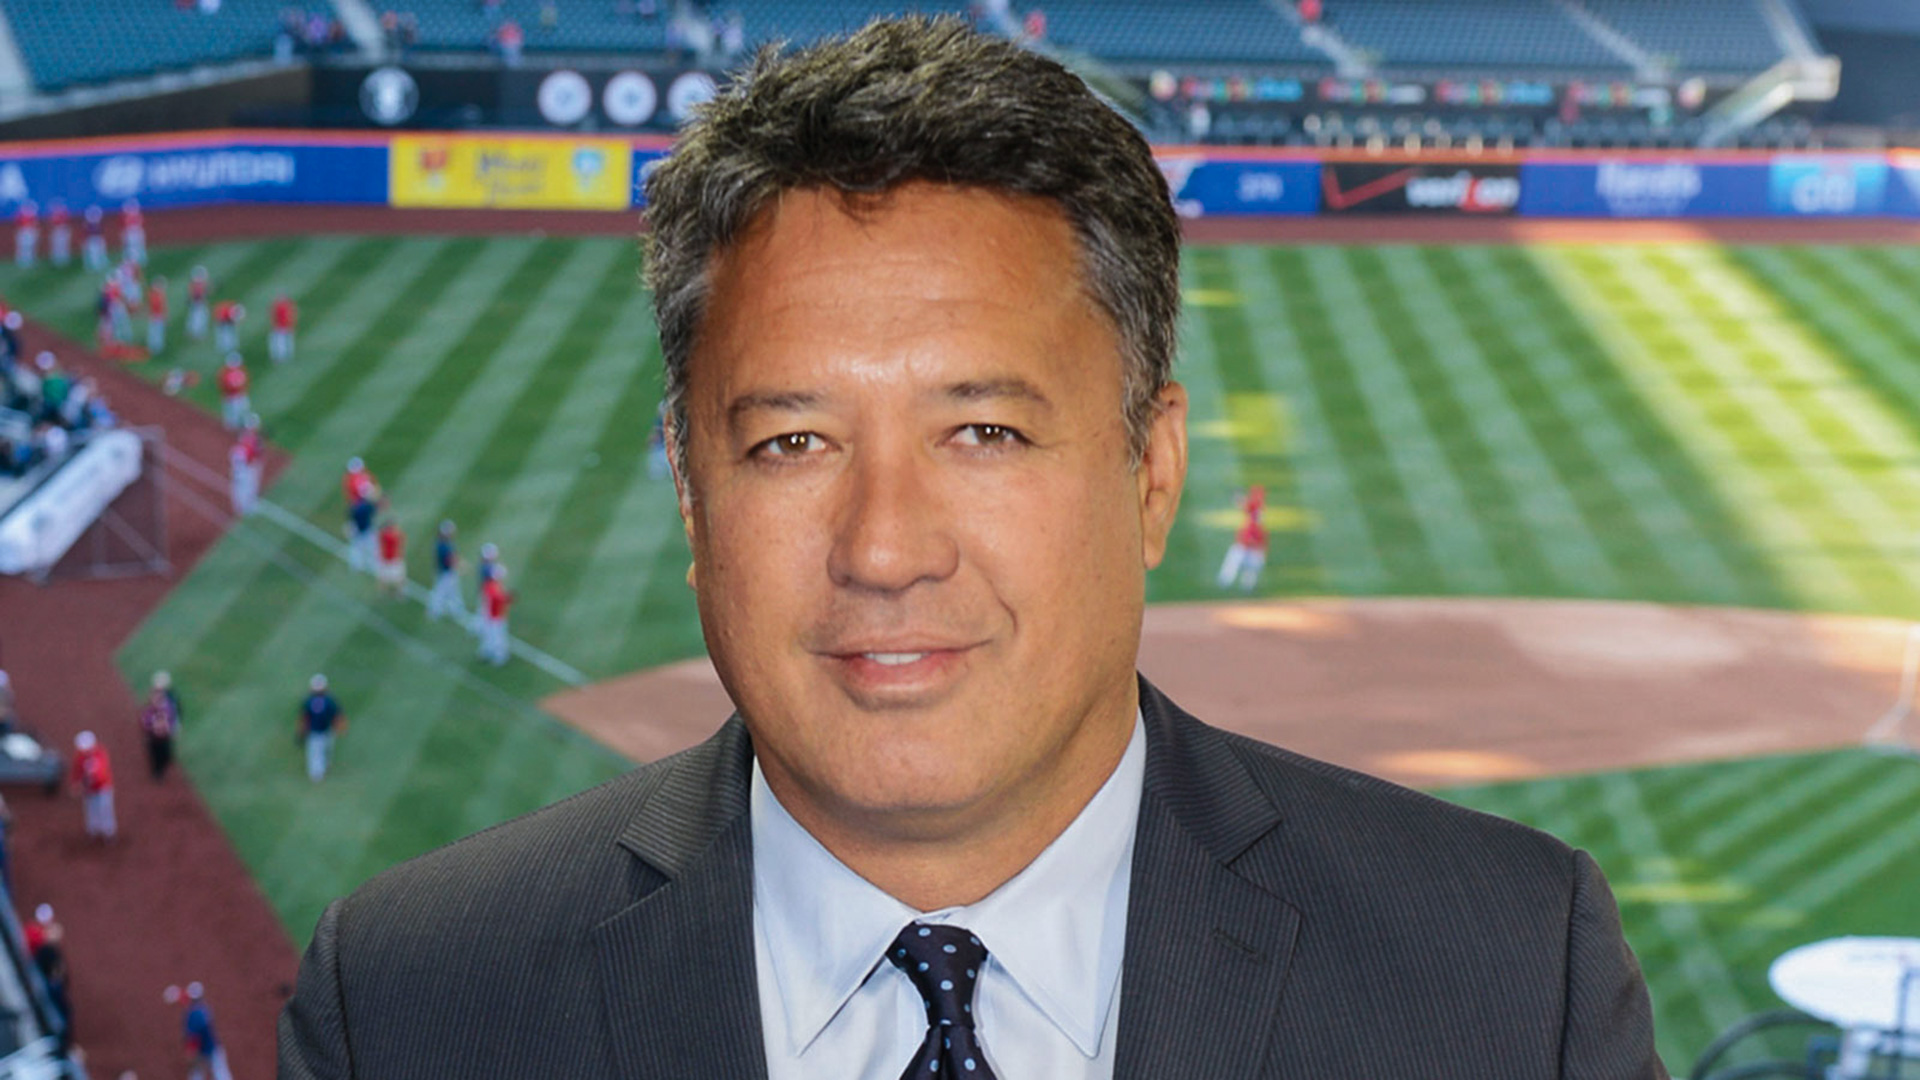 Ron-darling-042716-getty-ftrjpg_lt5scfgn3oag1urf26c8qr2om